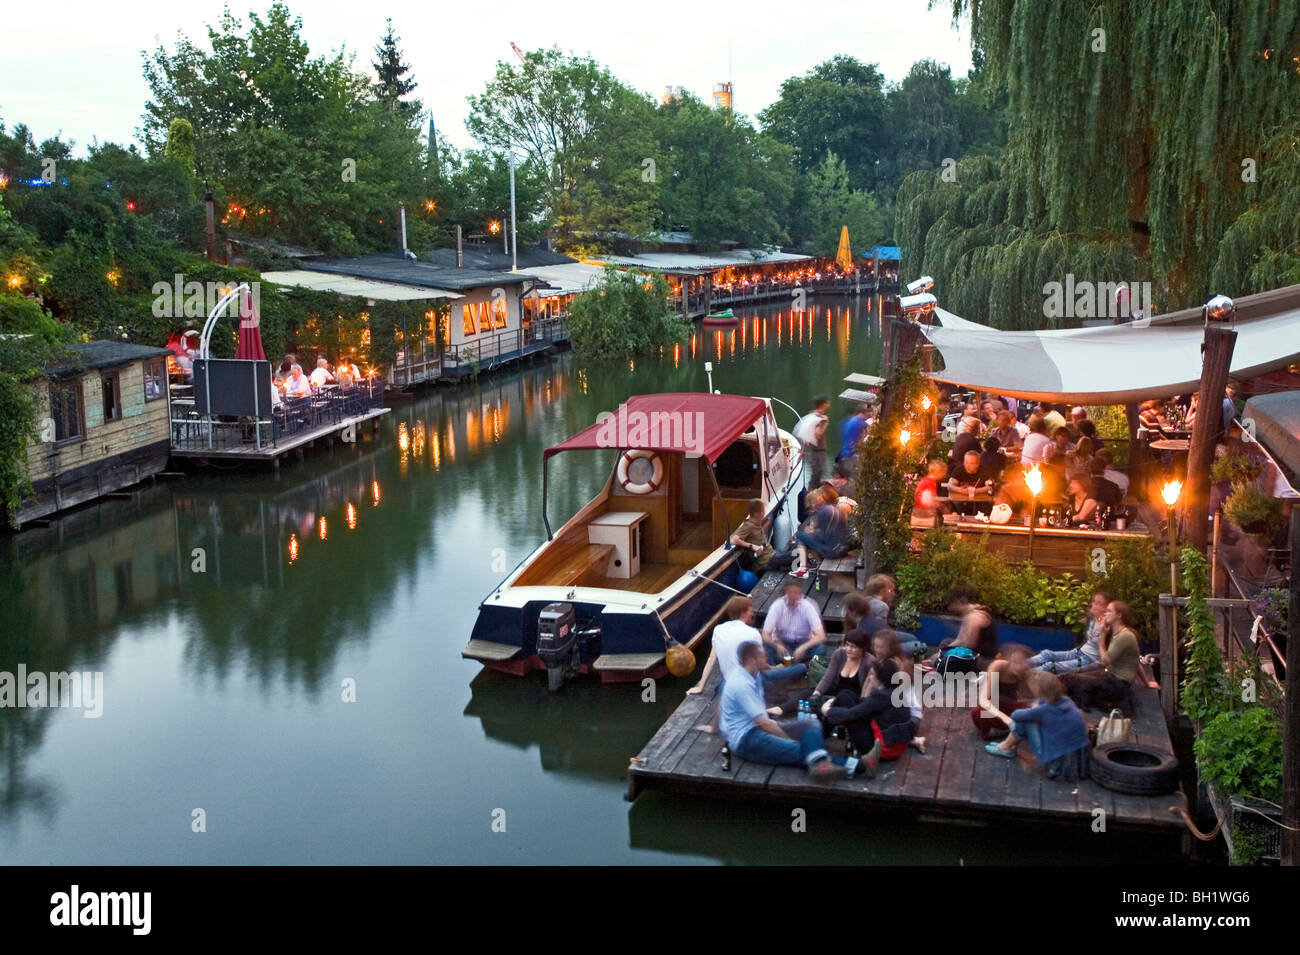 Club der Visionaere, restaurants, cafés, bars at Flutgraben in the evening, canal, Treptow, Berlin, Germany - Stock Image